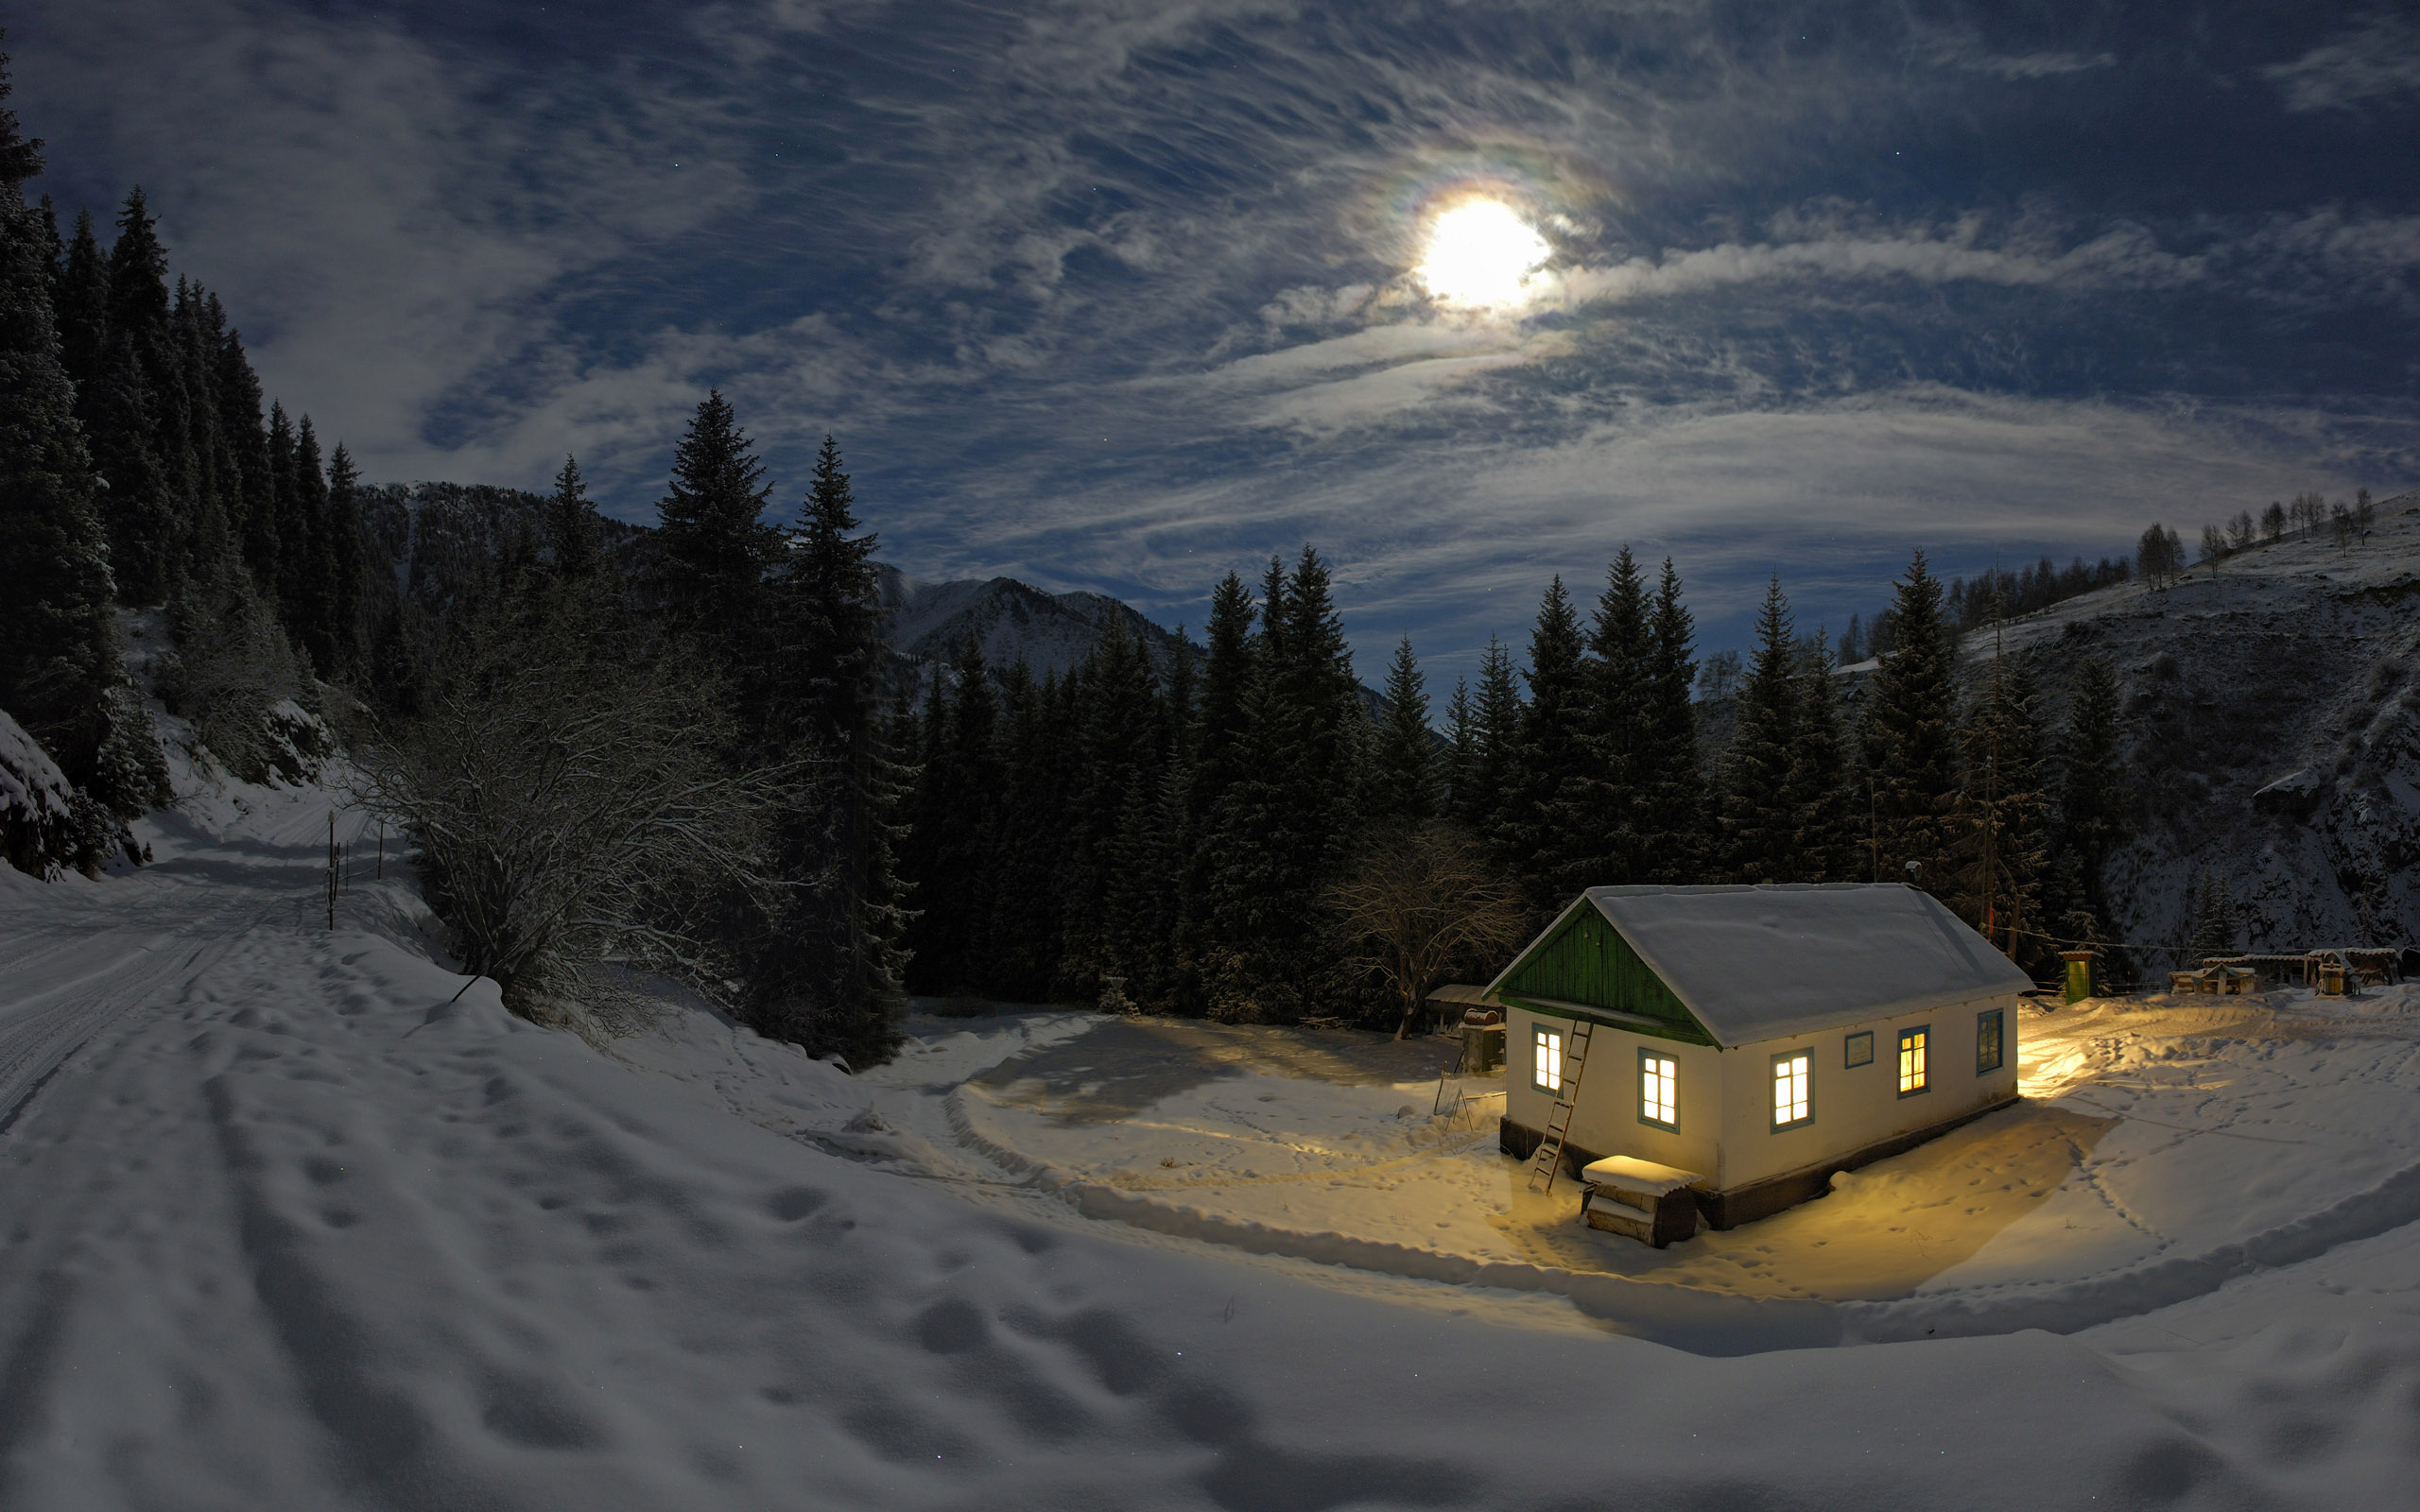 Free Scenery Wallpaper – Shows a Cold Moon House, Is the Owner Kind